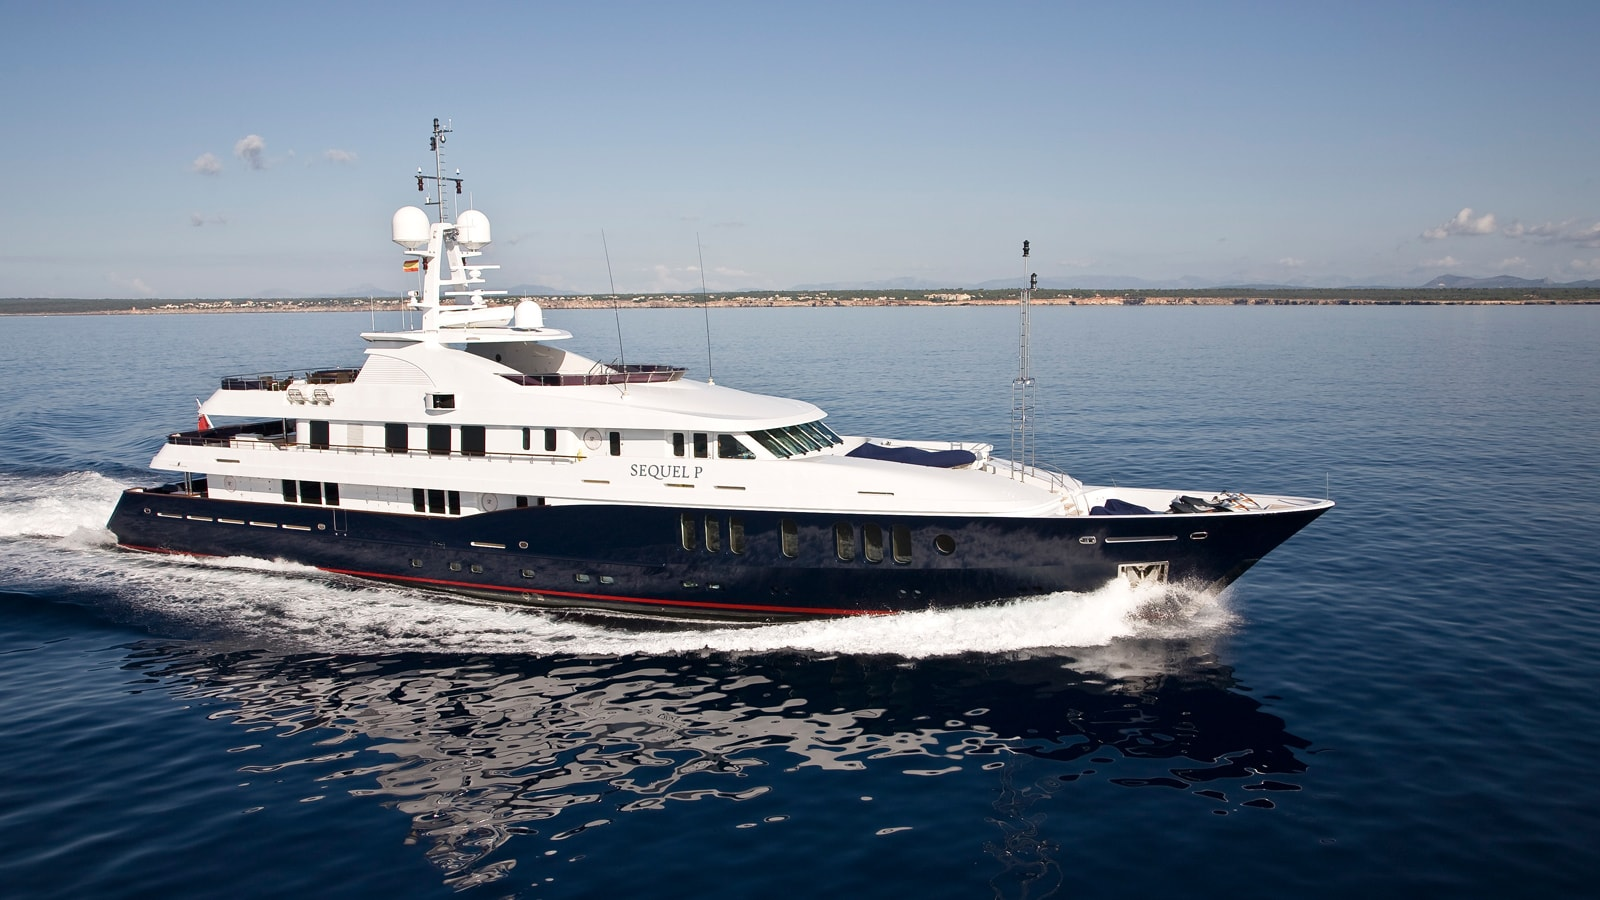 SequelP Yacht for Sale